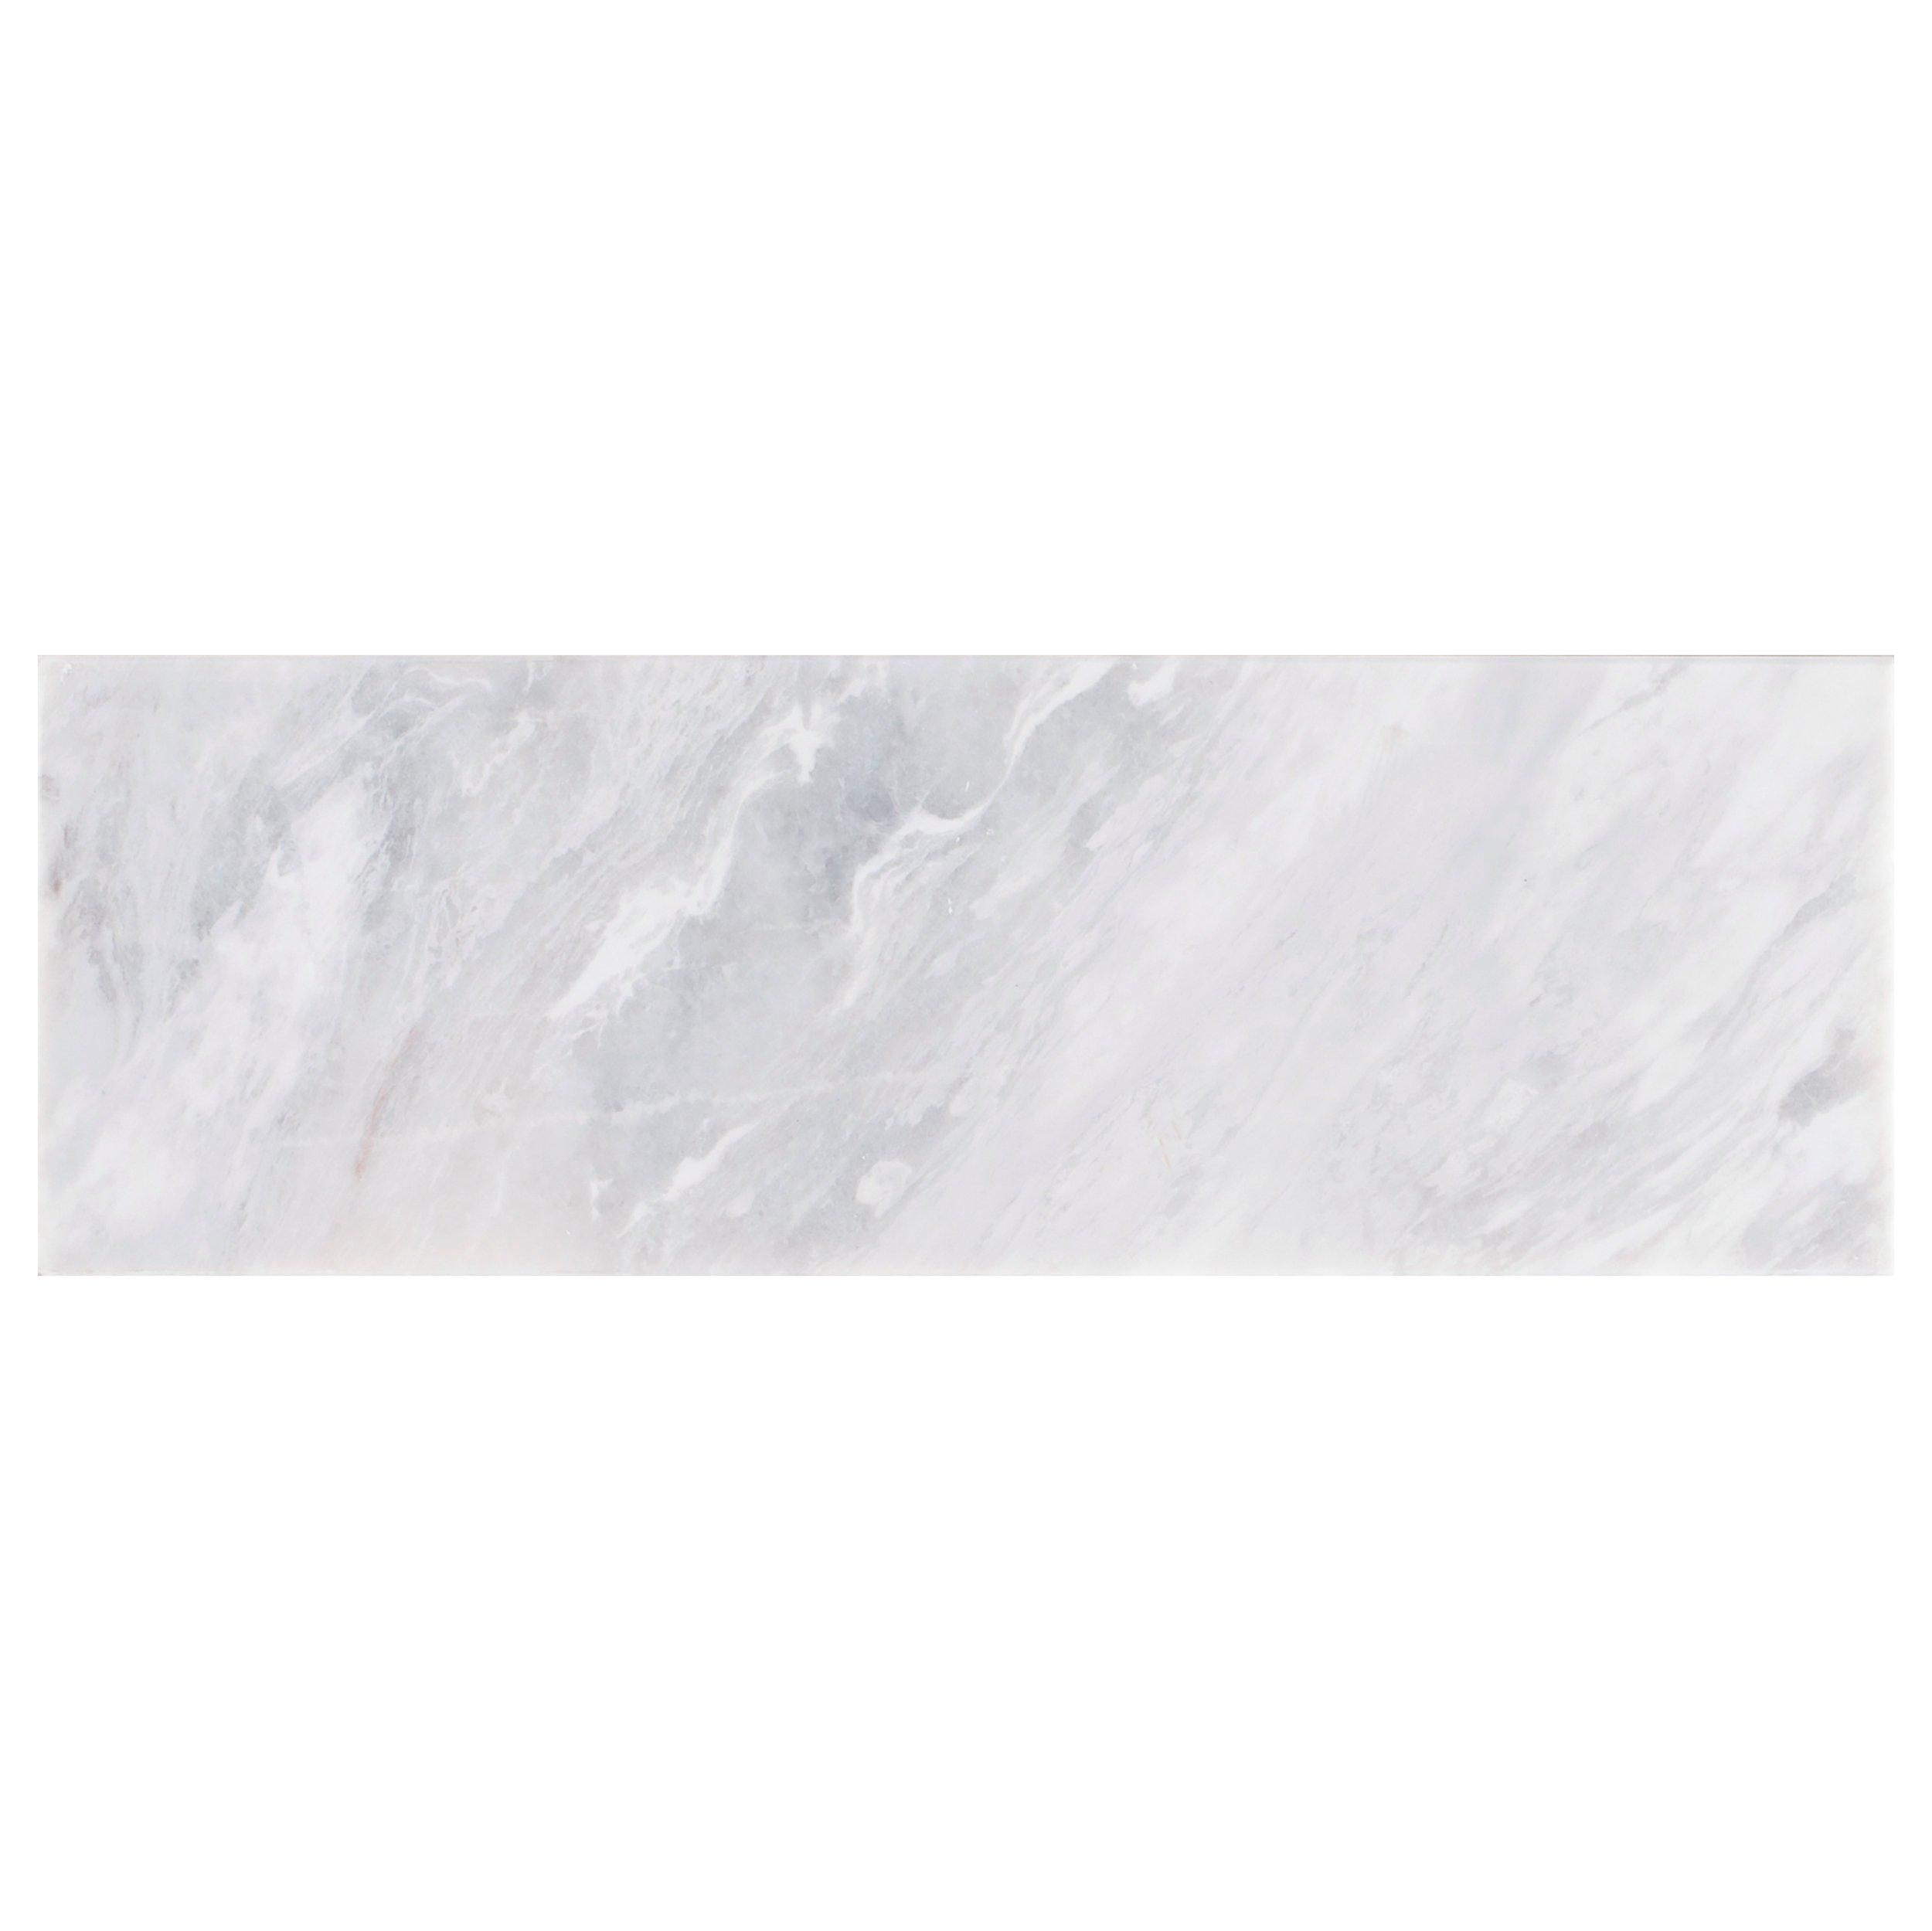 Solco White Polished Marble Tile In 2020 Polished Marble Tiles Marble Tile Polished Porcelain Tiles